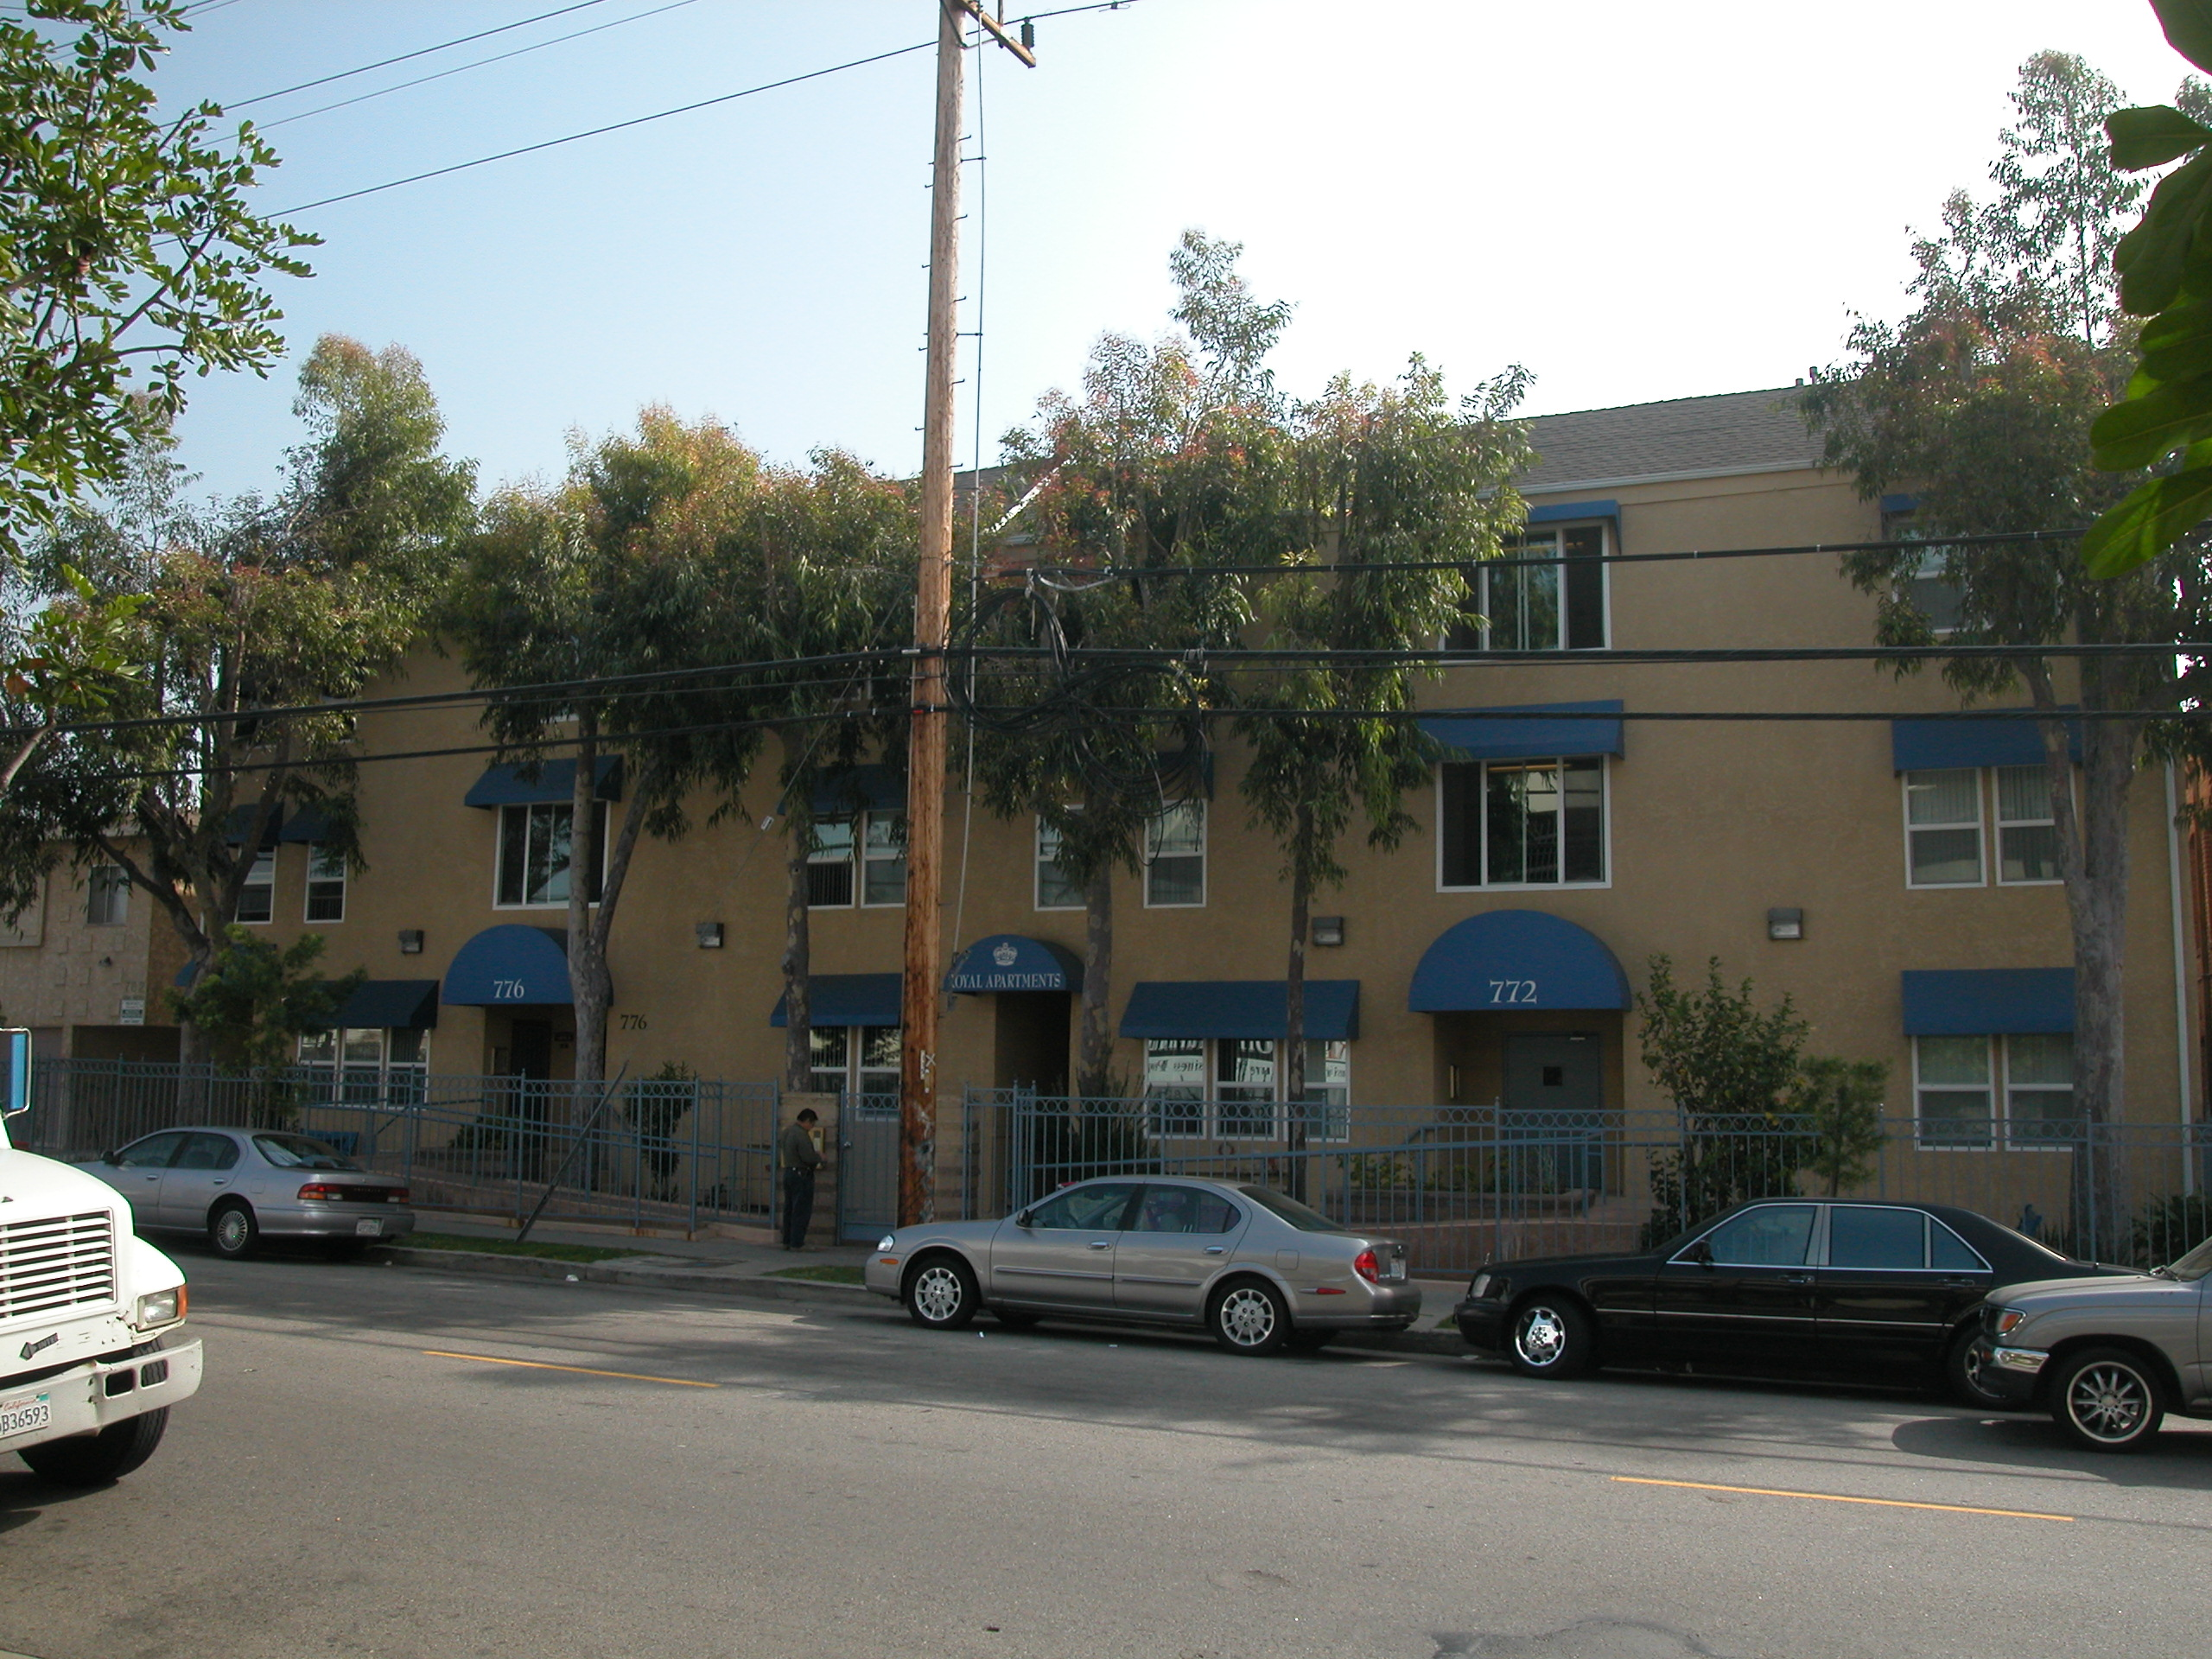 Brown-Yellowish, three story building with blue shades in multiple windows, property number and name in bottom blue shades, gated property, parked cars in front, trees and bushes in front of property, a male getting keys ready to go in, light pole right i